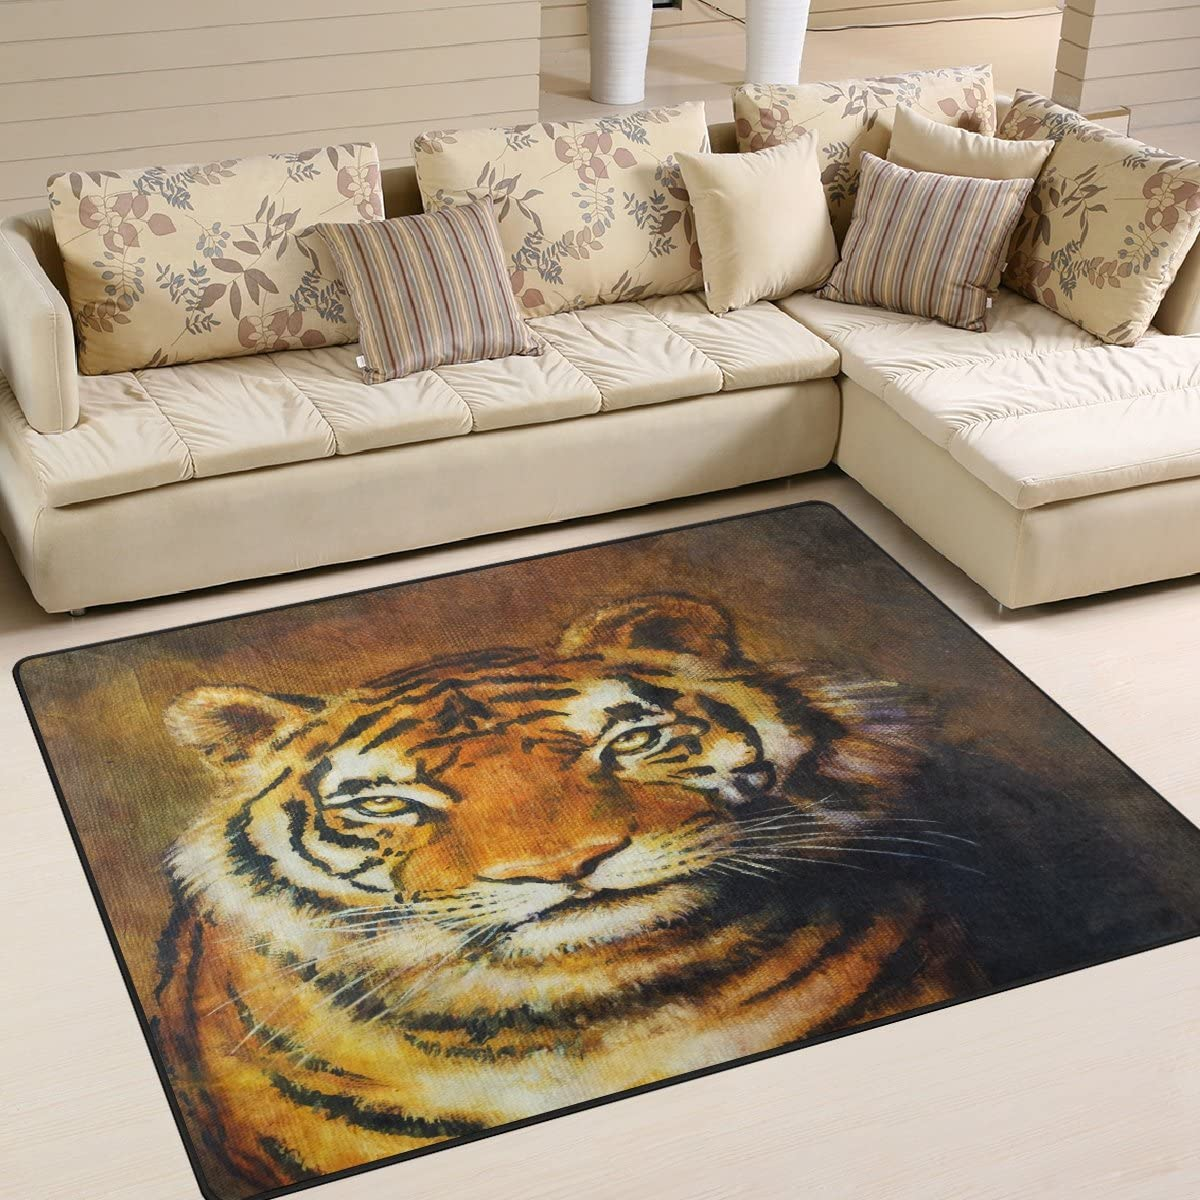 NEW ALAZA Max 62% OFF Oil Painting Tiger Area Rug Bedroom Rugs 5 for Room Living